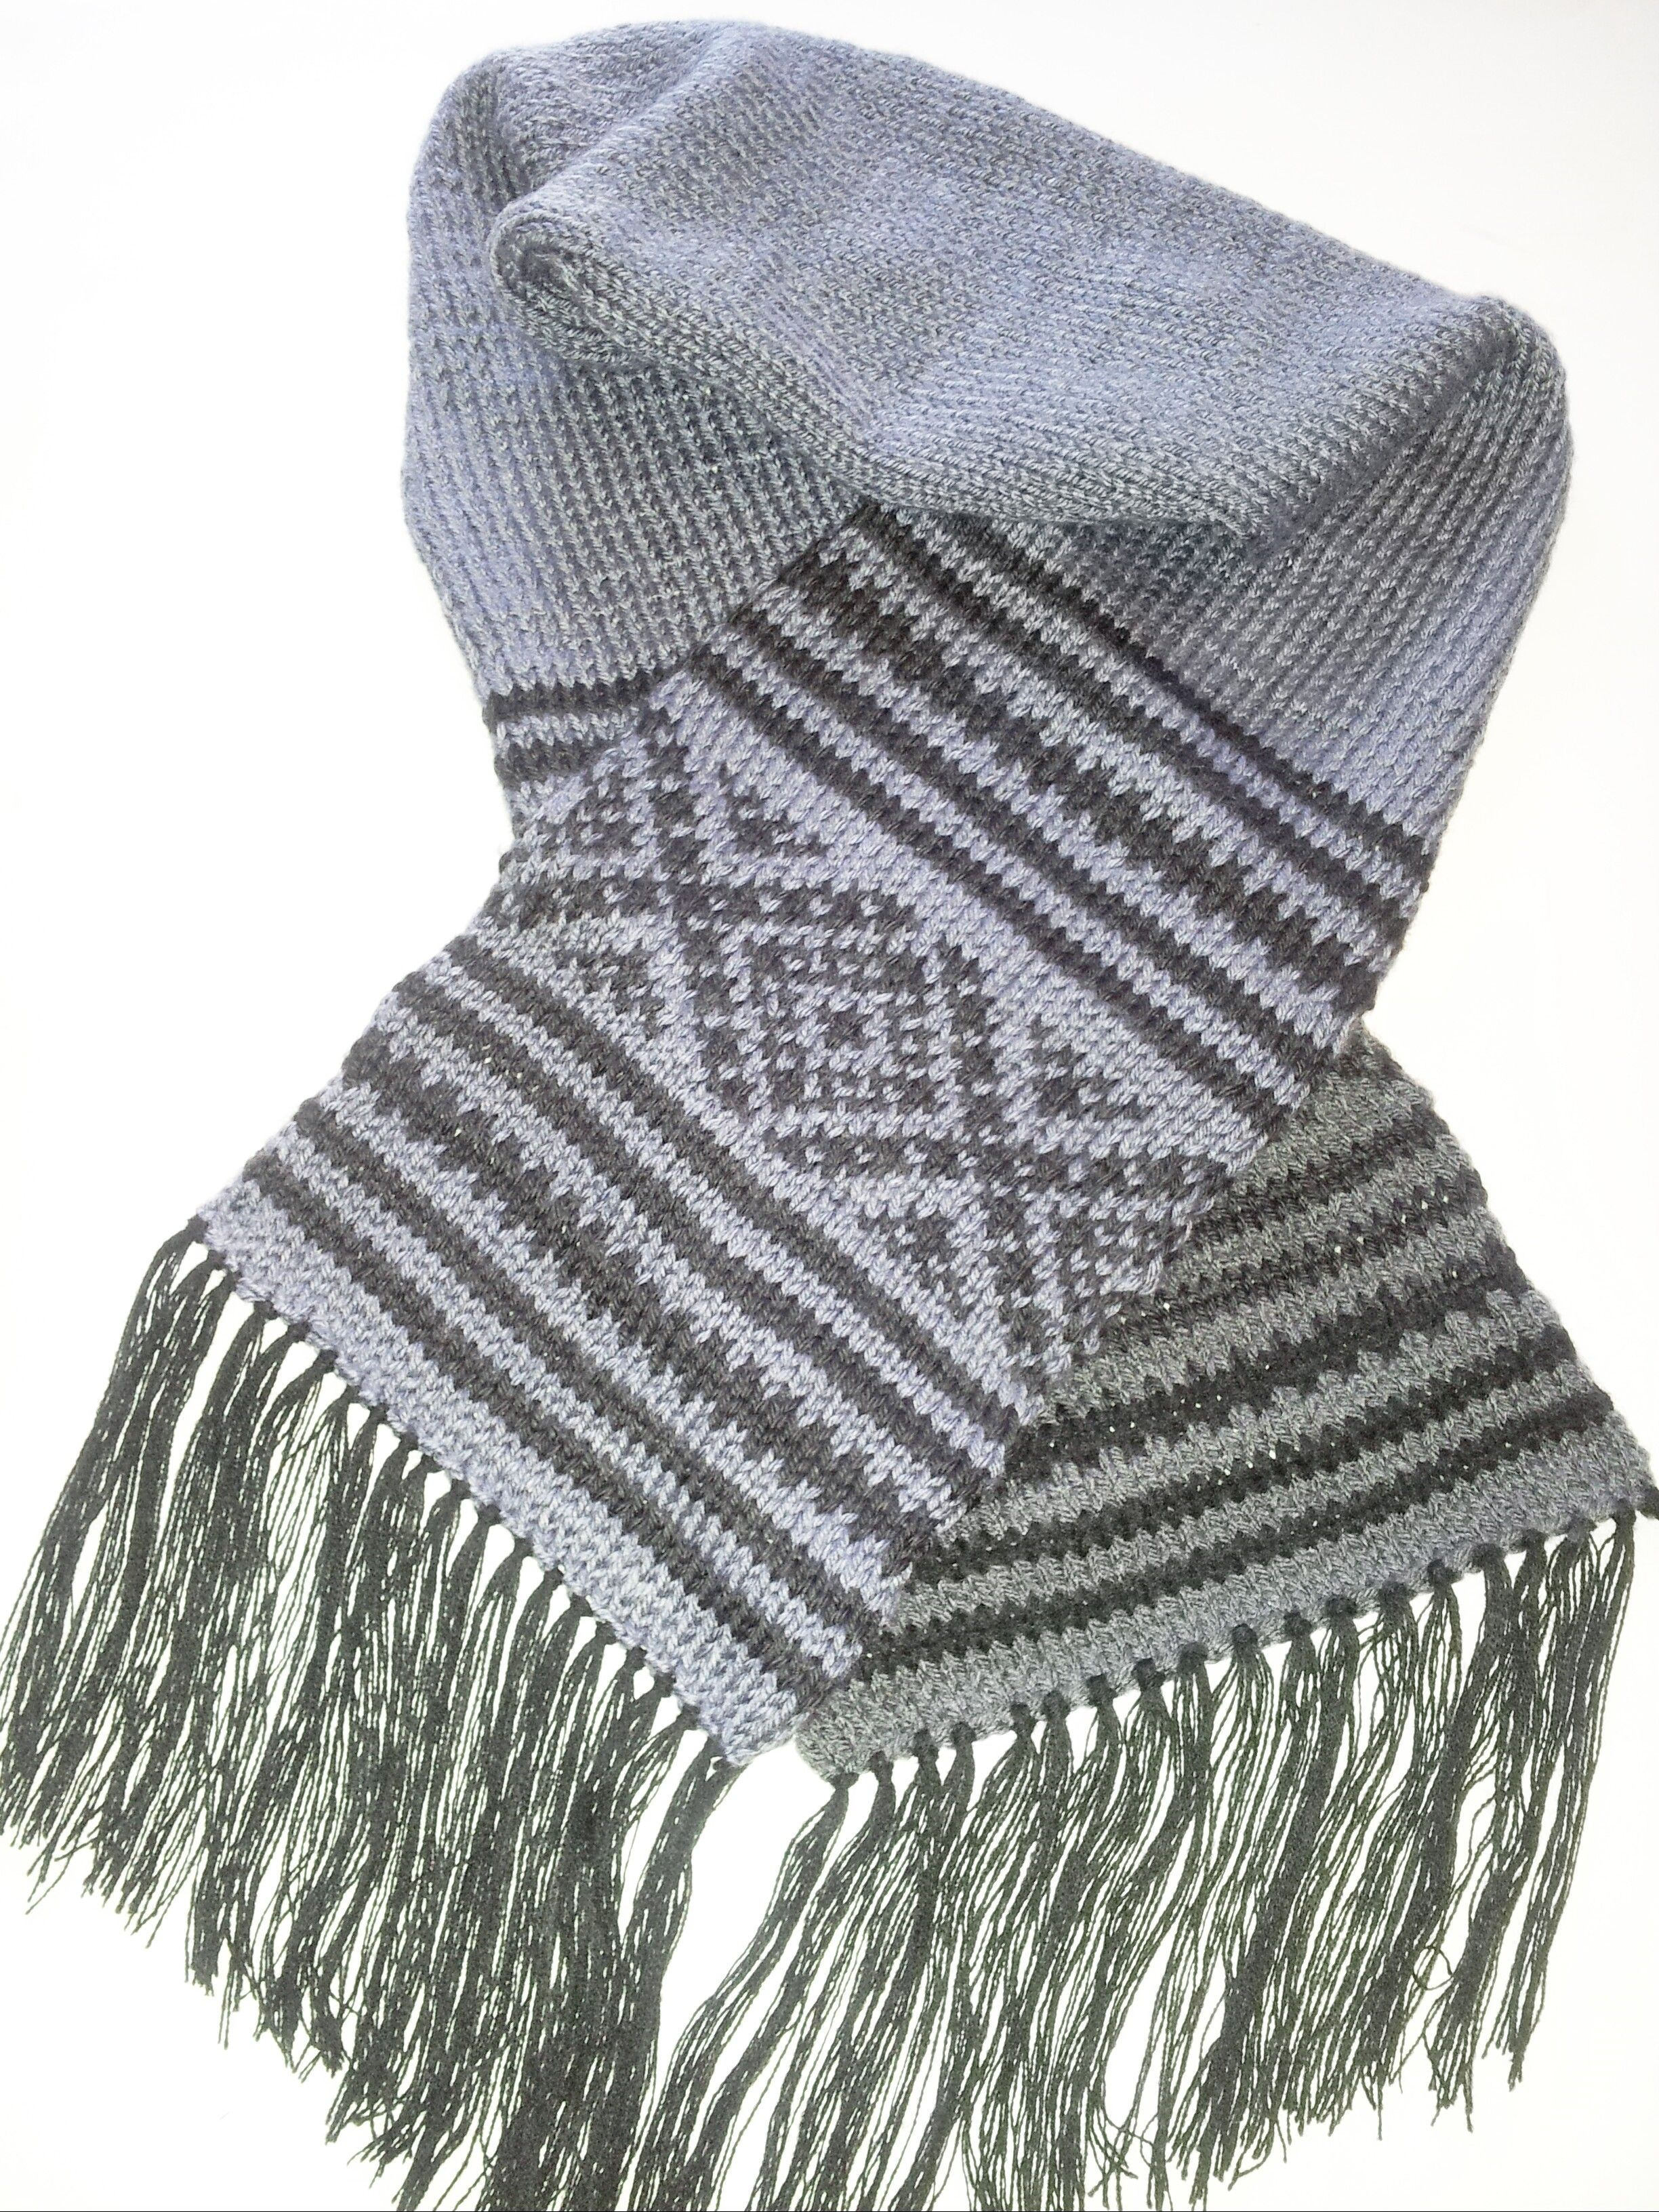 Follow step by step this free pattern to knit this beautiful ...